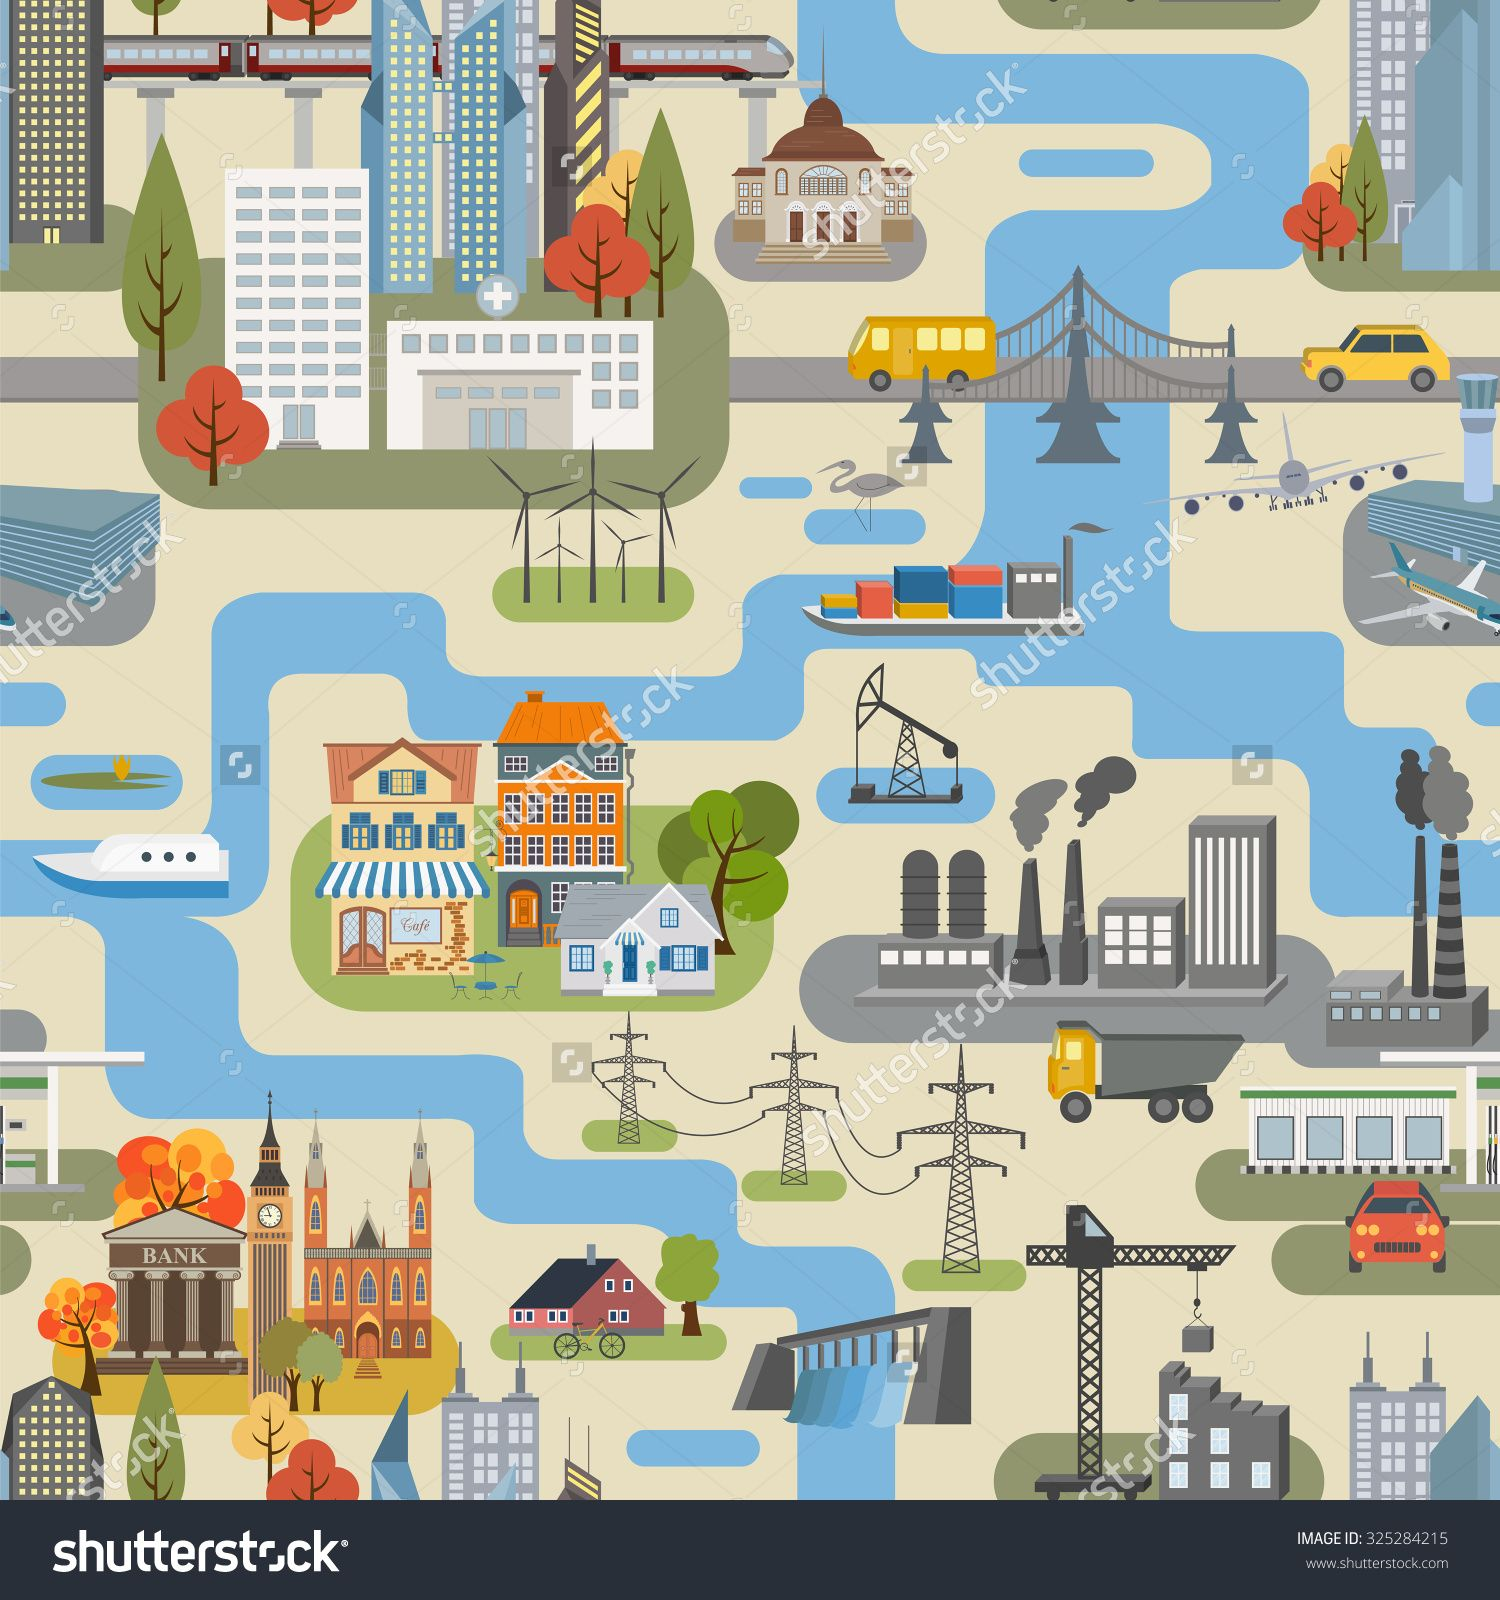 great city map creatorseamless pattern map houses infrastructure industrial transport - House Map Creator